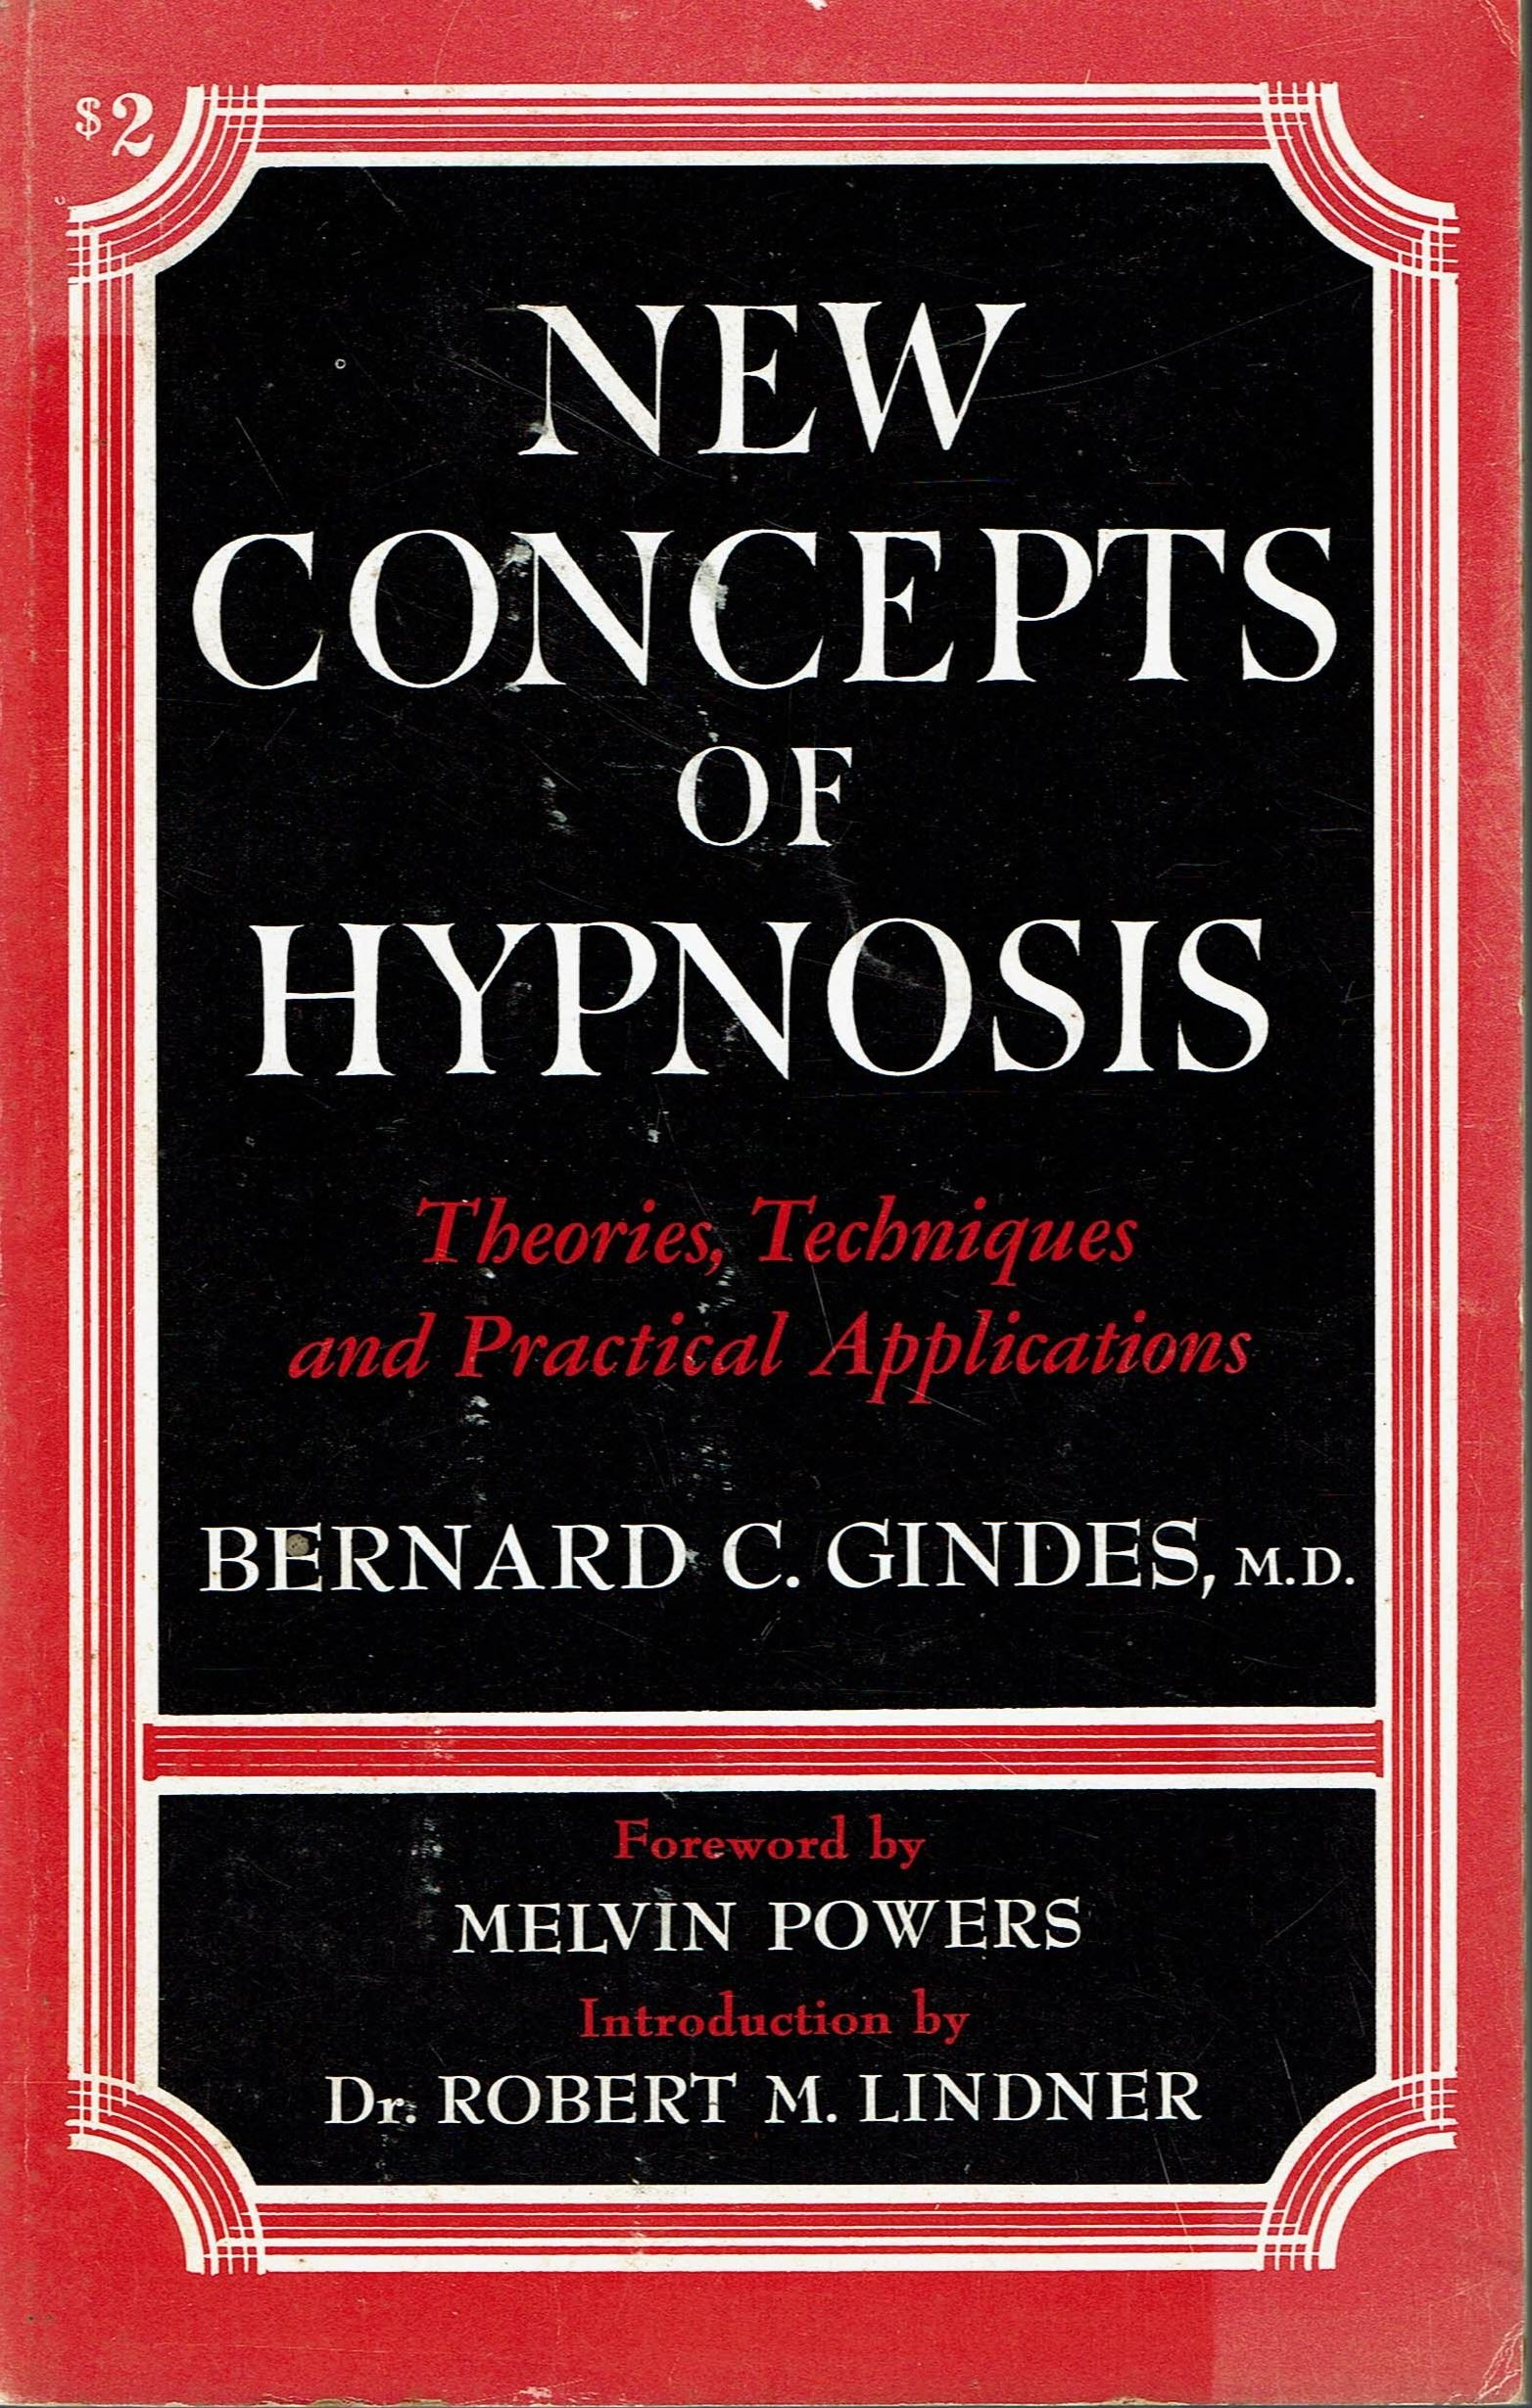 New Concepts of Hypnosis: Bernard C  Gindes M D , Melvin